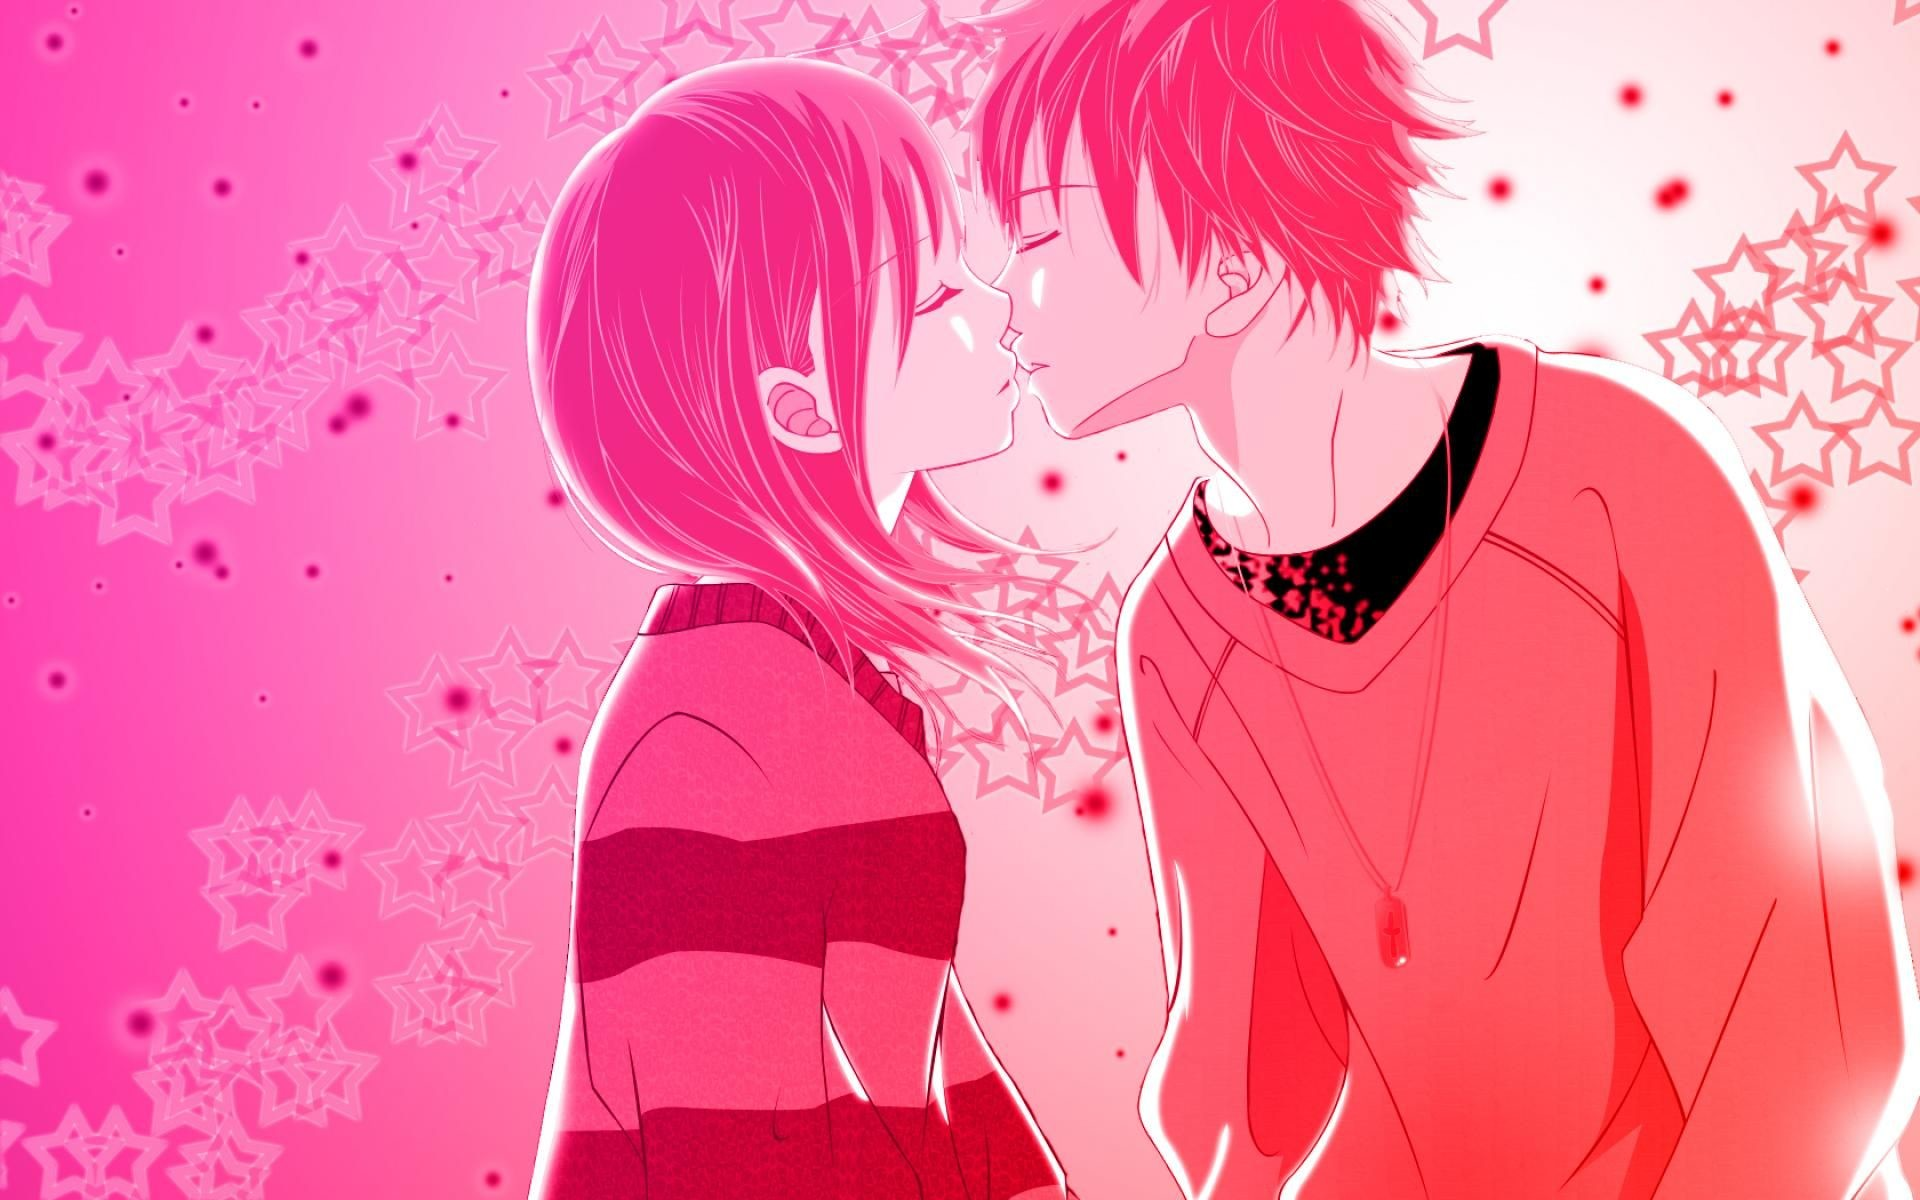 1920x1200 love anime kiss pink wallpaper